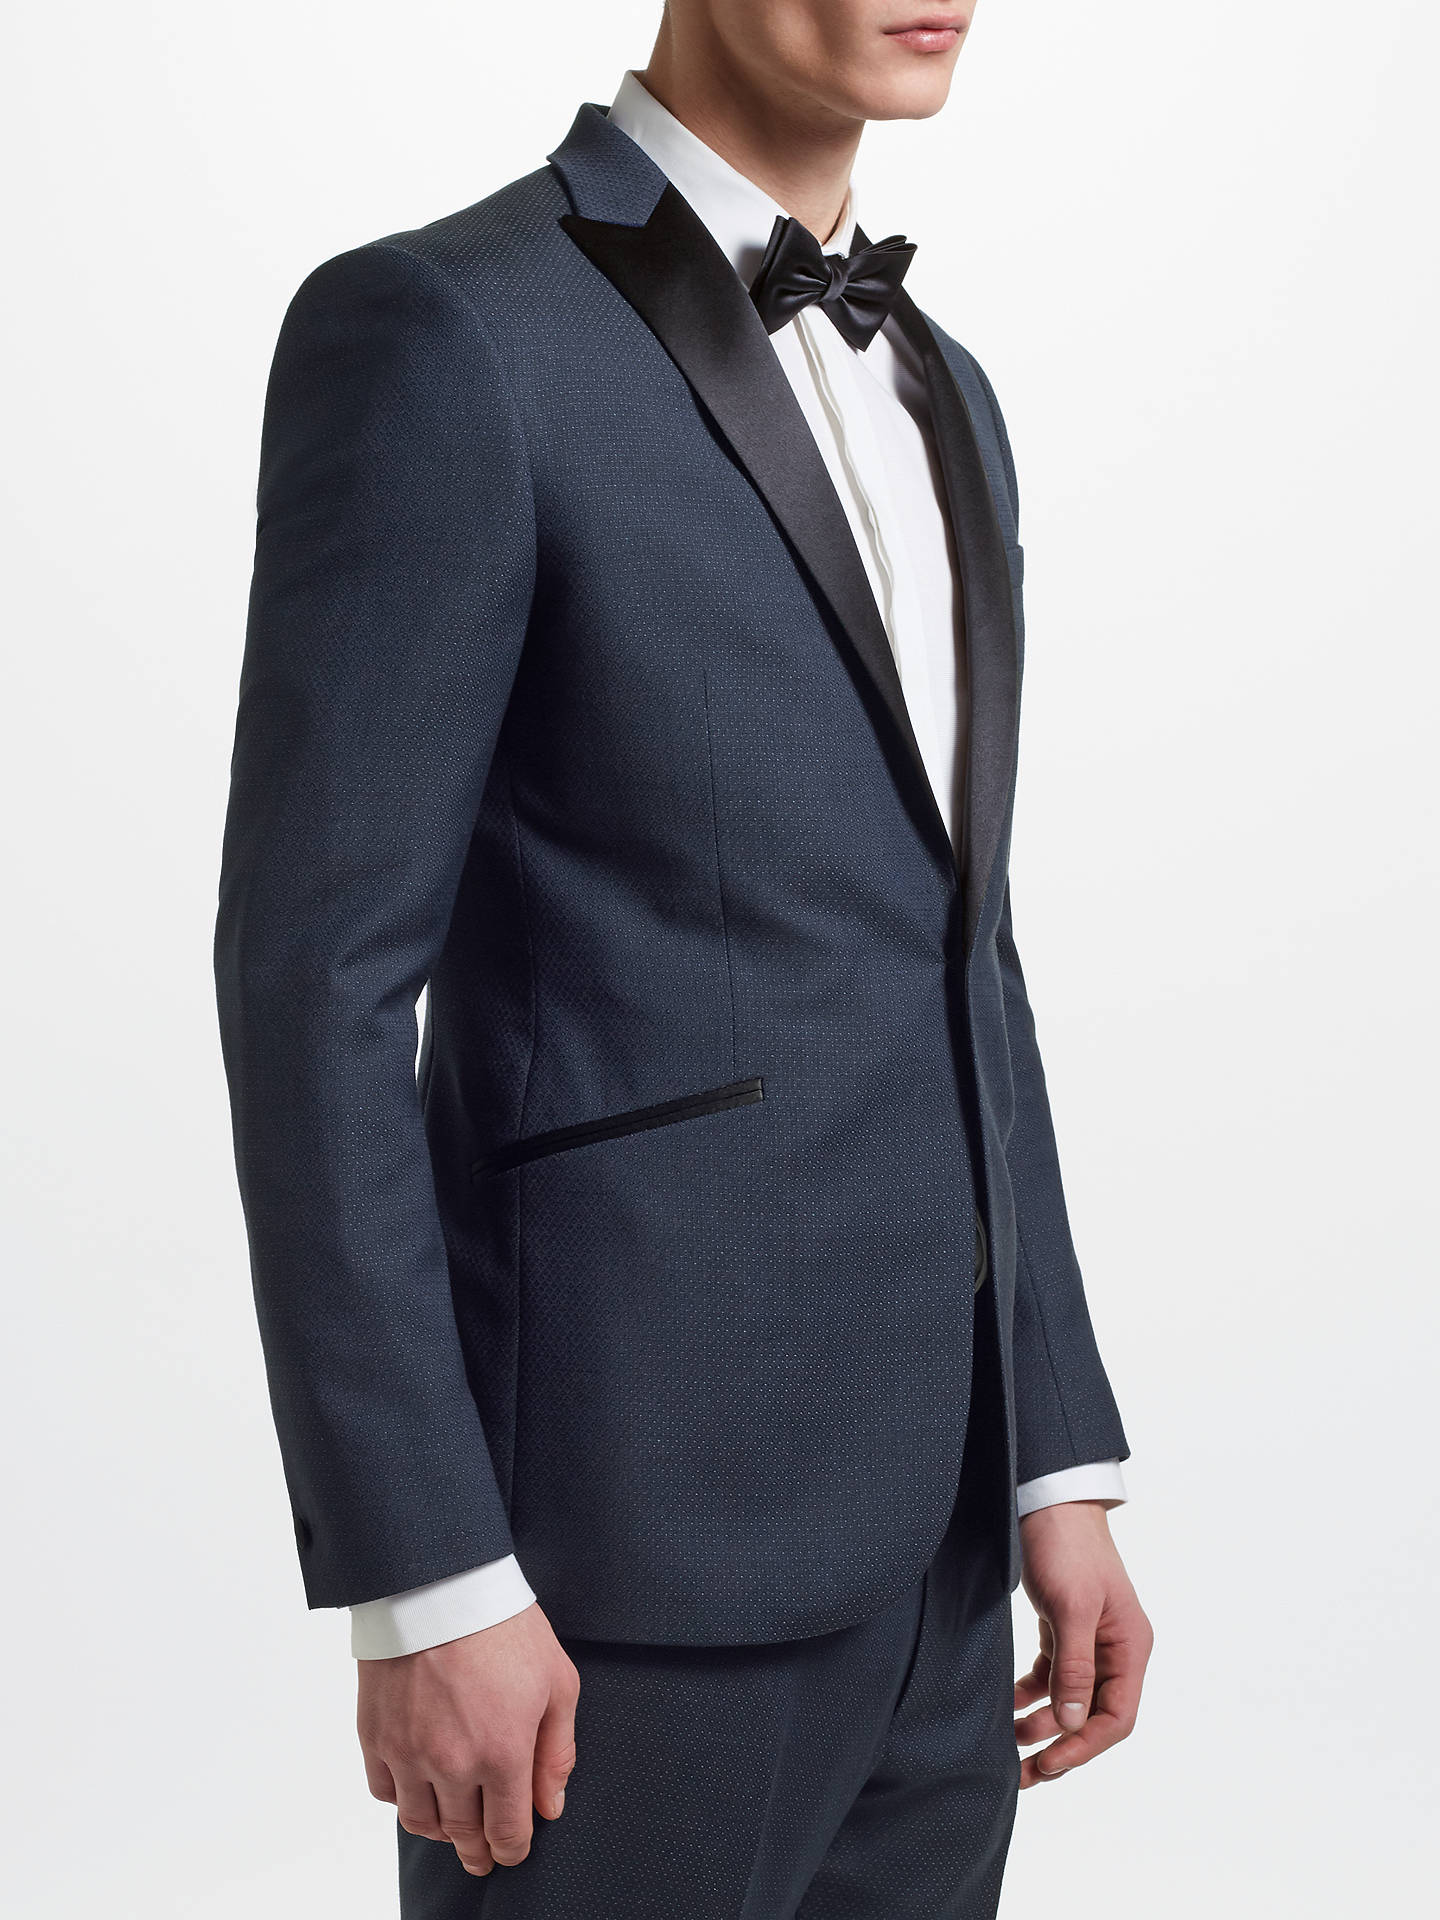 BuyKin Jacquard Pindot Slim Fit Dress Jacket, Navy, 36S Online at johnlewis.com